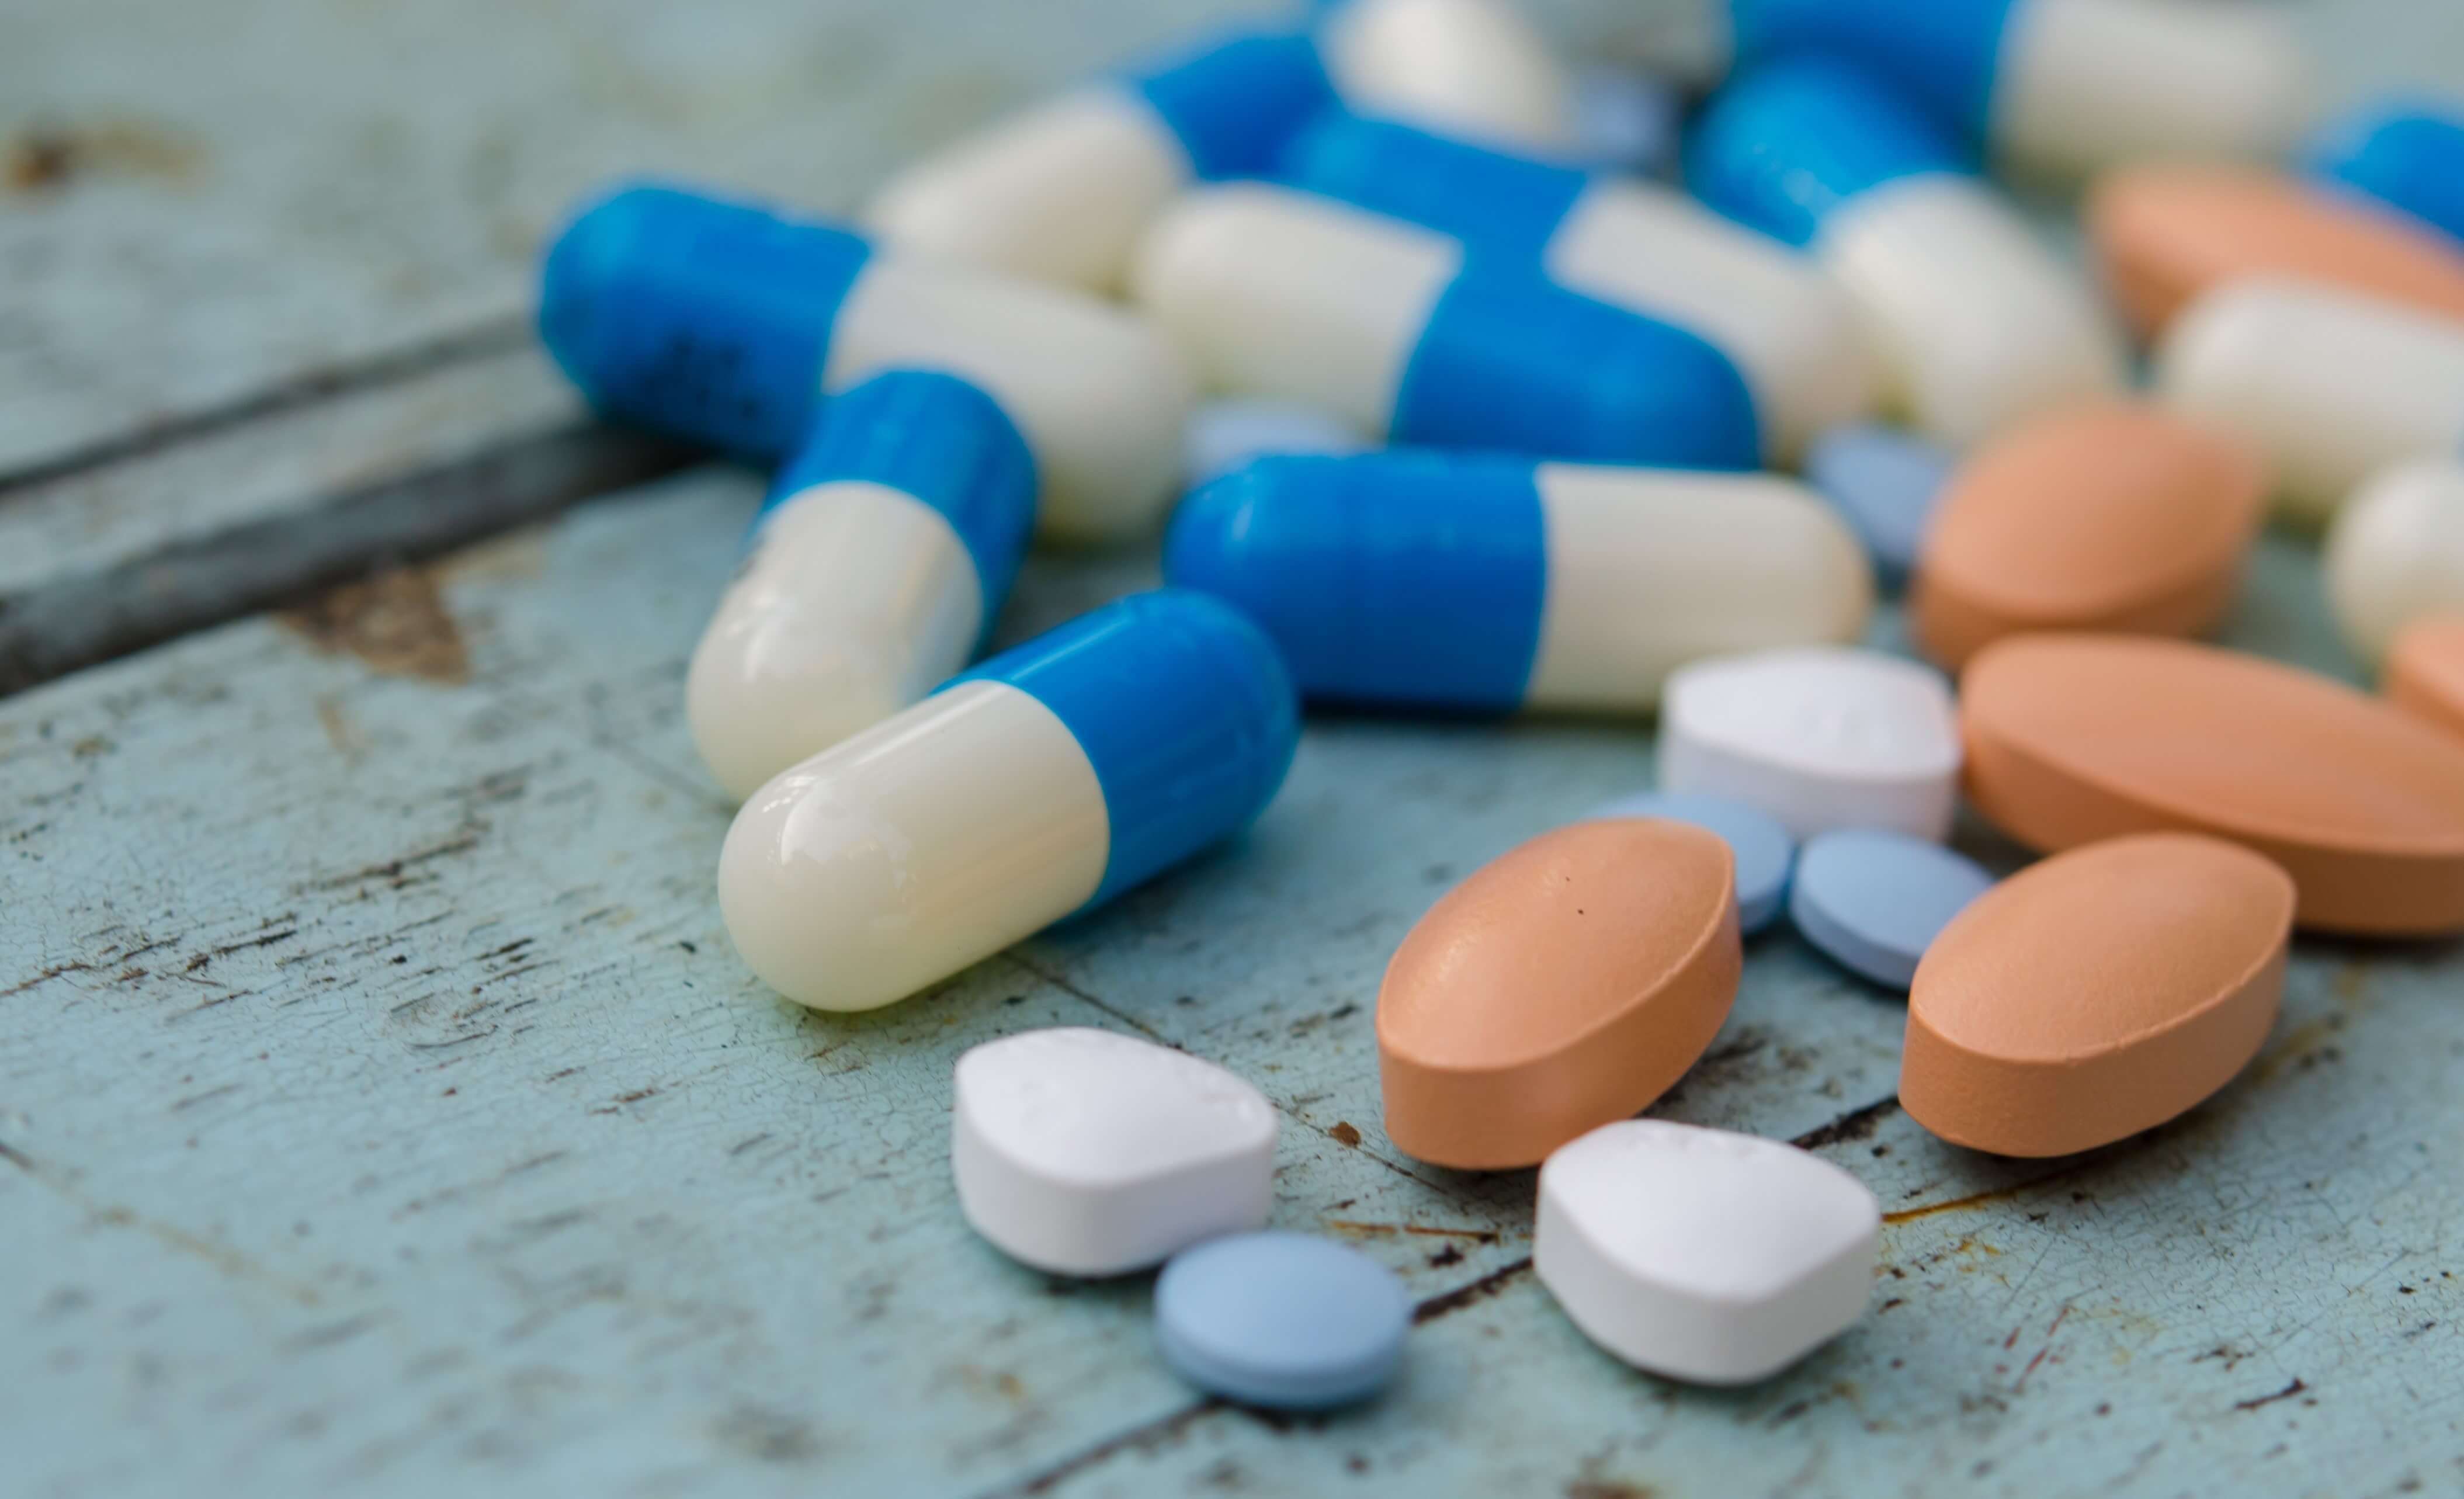 Counterfeit pharmaceuticals frmo Turkey remain a real issue